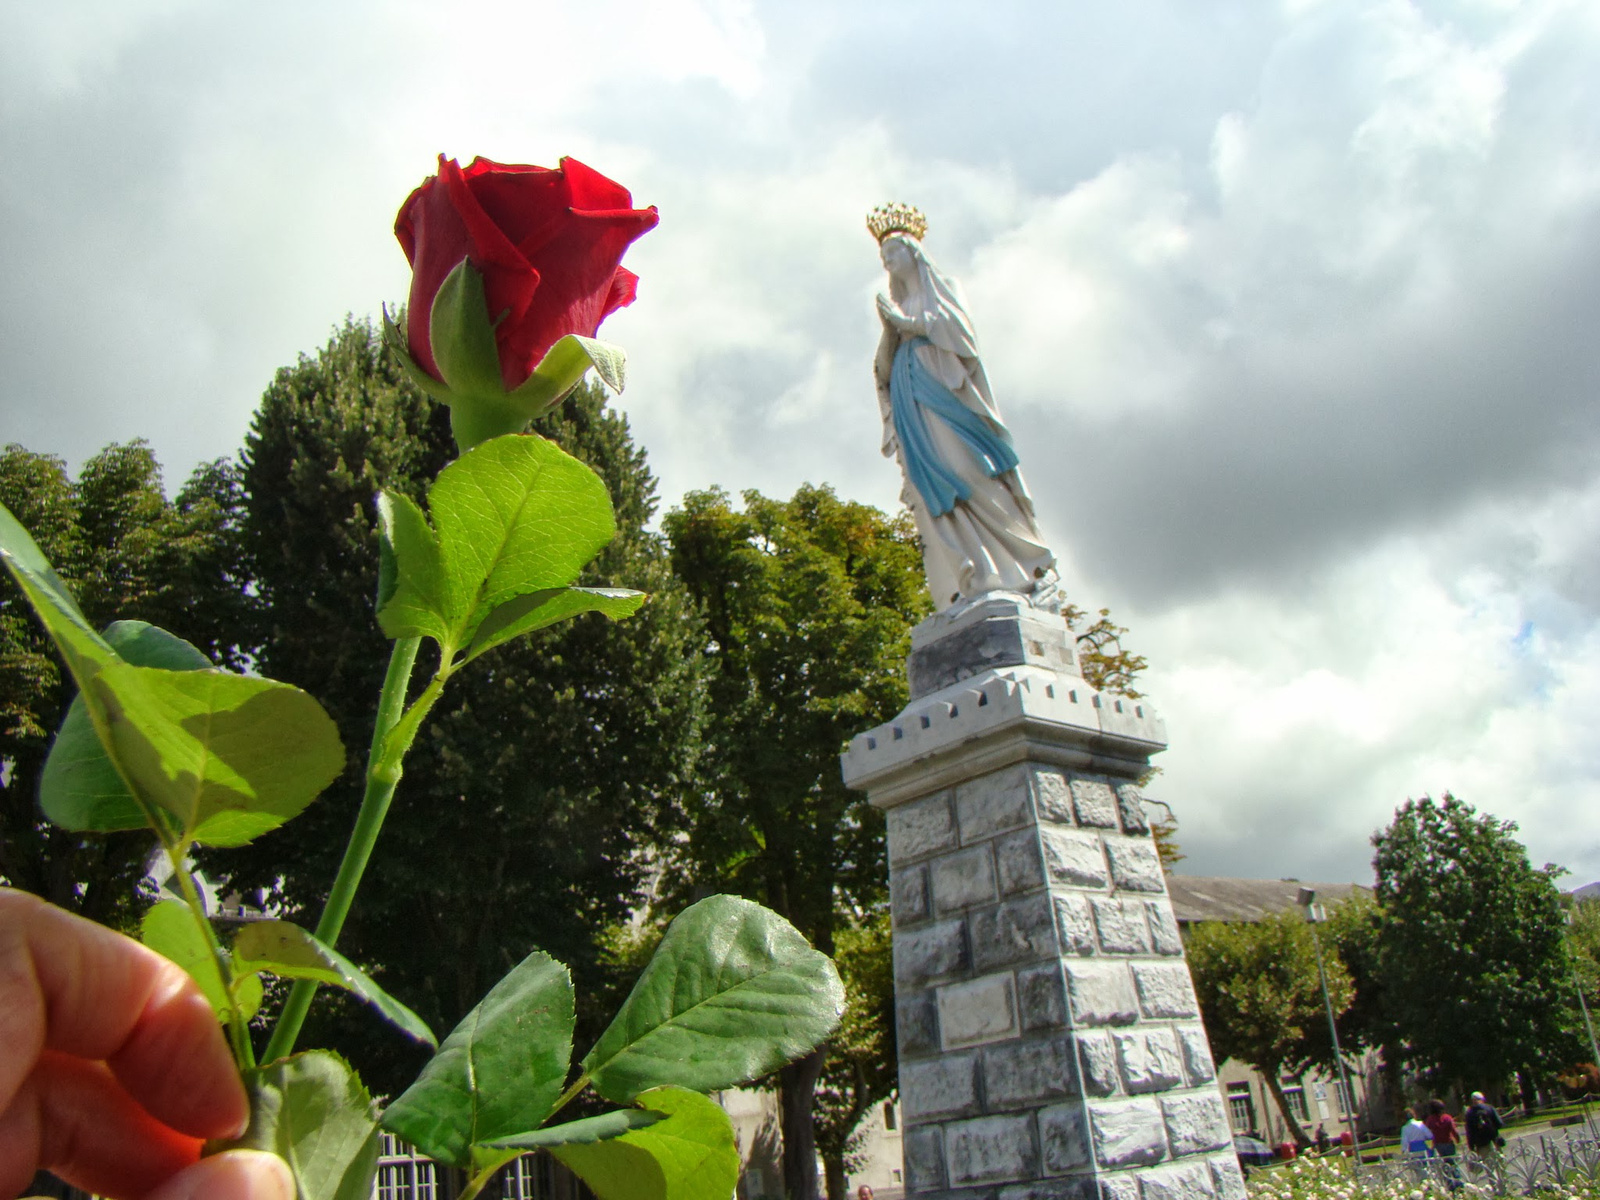 A red rose for Our Lady by ♥ Cathy Cotte ♥